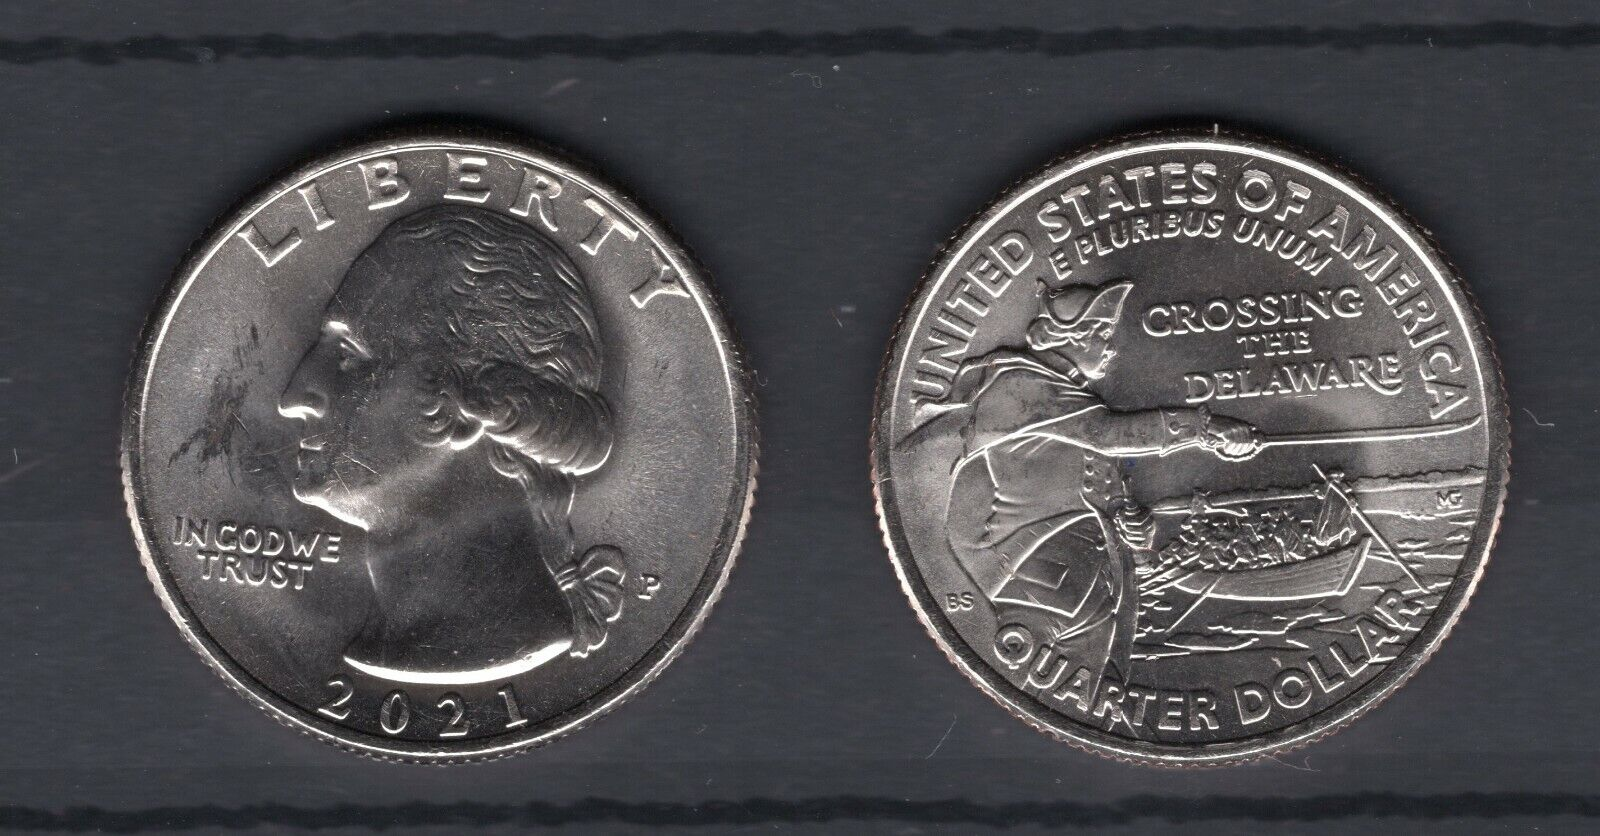 USA 2021 WASHINGTON CROSSING THE DELAWARE QUARTER wahlweise in  D oder P